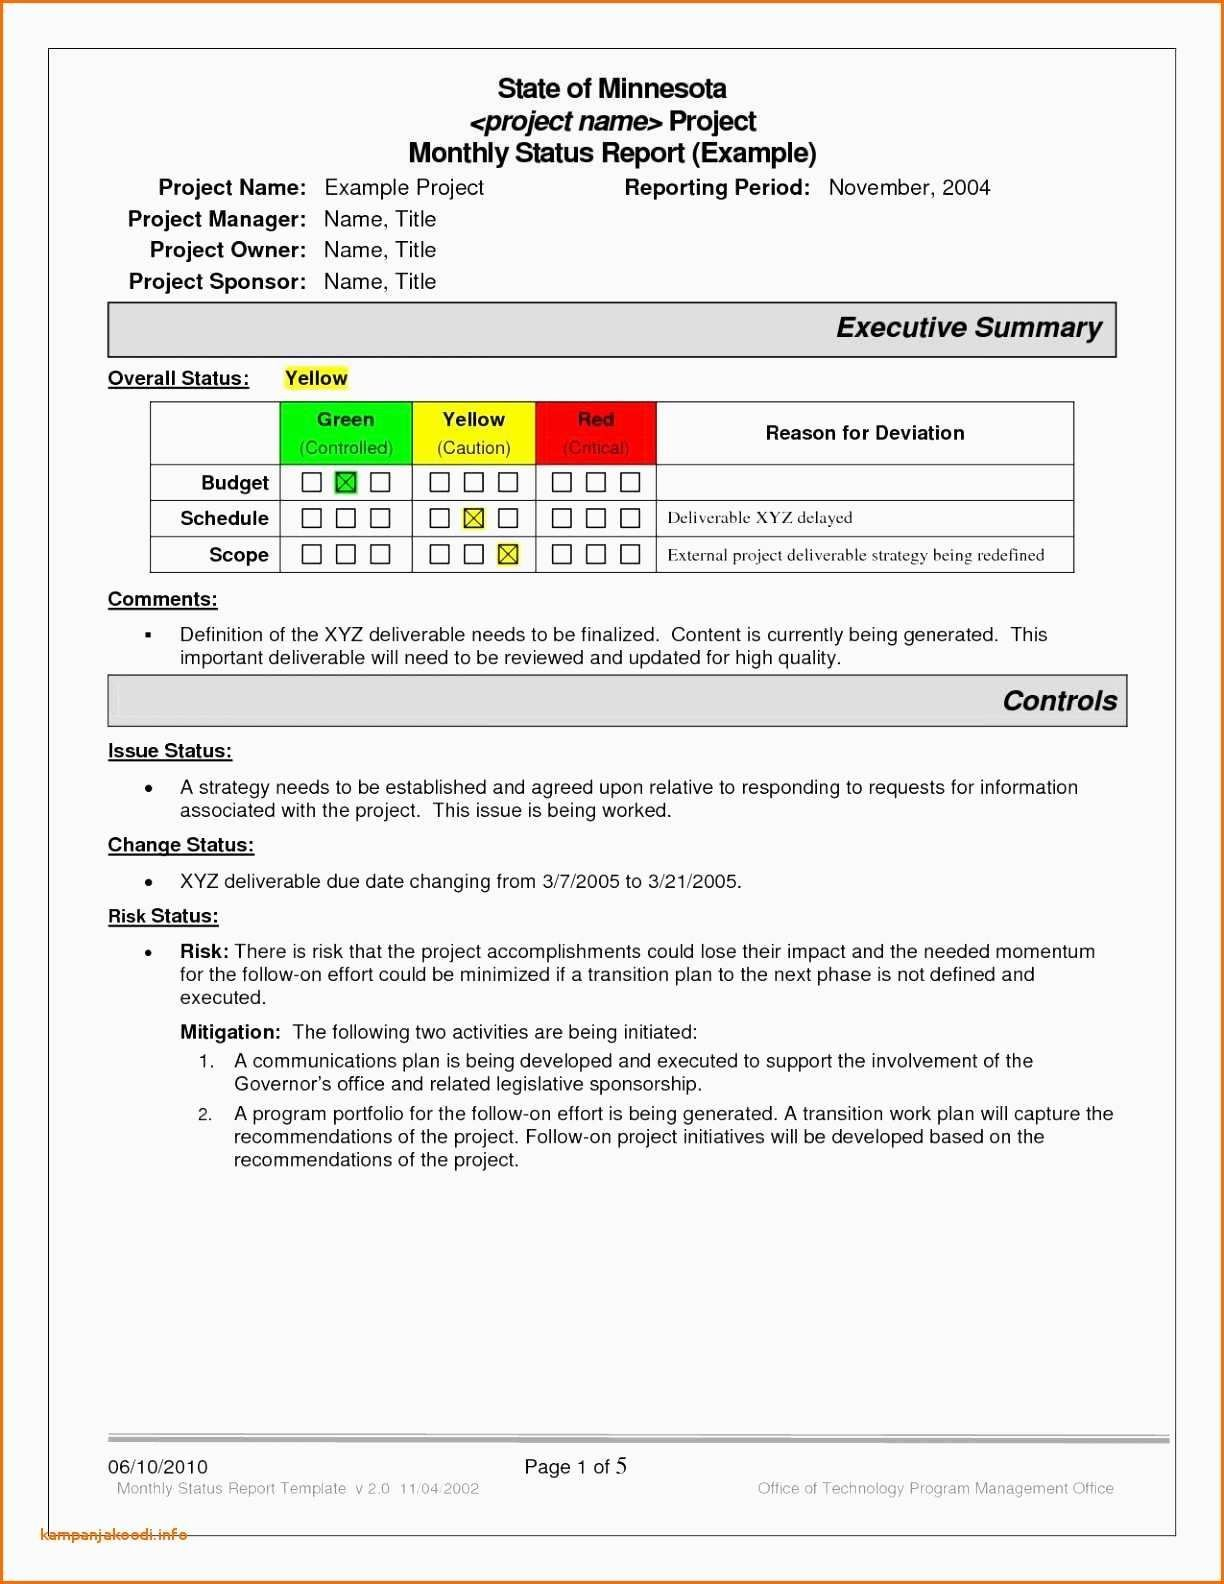 Proposal Worksheet Template  Briefencounters Within Proposal Worksheet Template 2